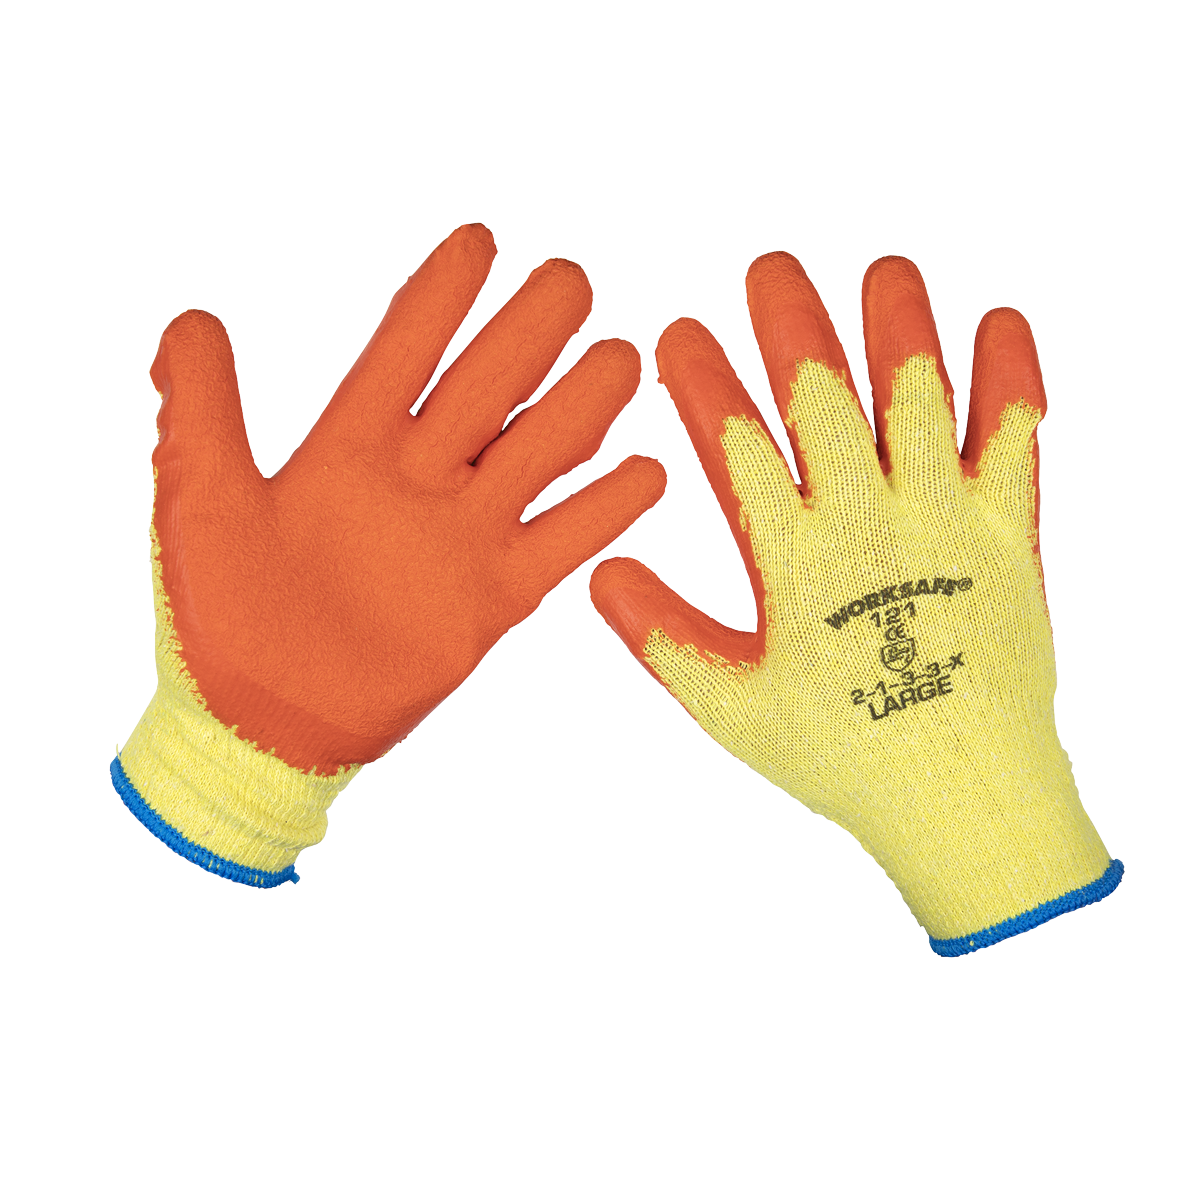 Sealey Super Grip Knitted Gloves Latex Palm (Large) - Pack of 12 Pairs 9121L/12   Latex coating with poly cotton lining gives superior grip in wet and dry conditions.   toolforce.ie